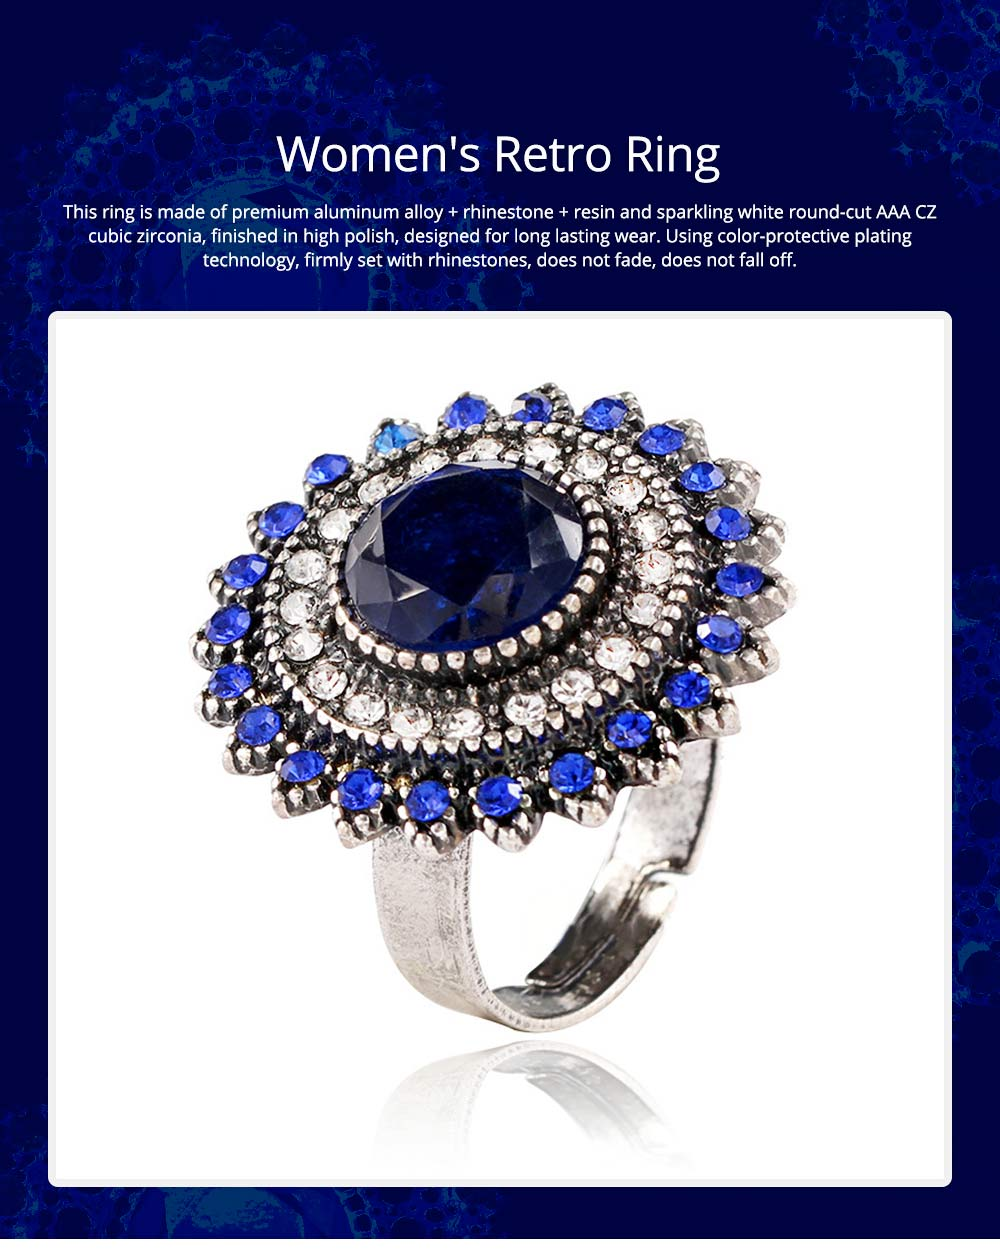 Women's Retro Ring Big Sun Flower Adjustable Aluminum Alloy Rhinestone Rings Women Fashion Accessories Best Gifts for Women 0